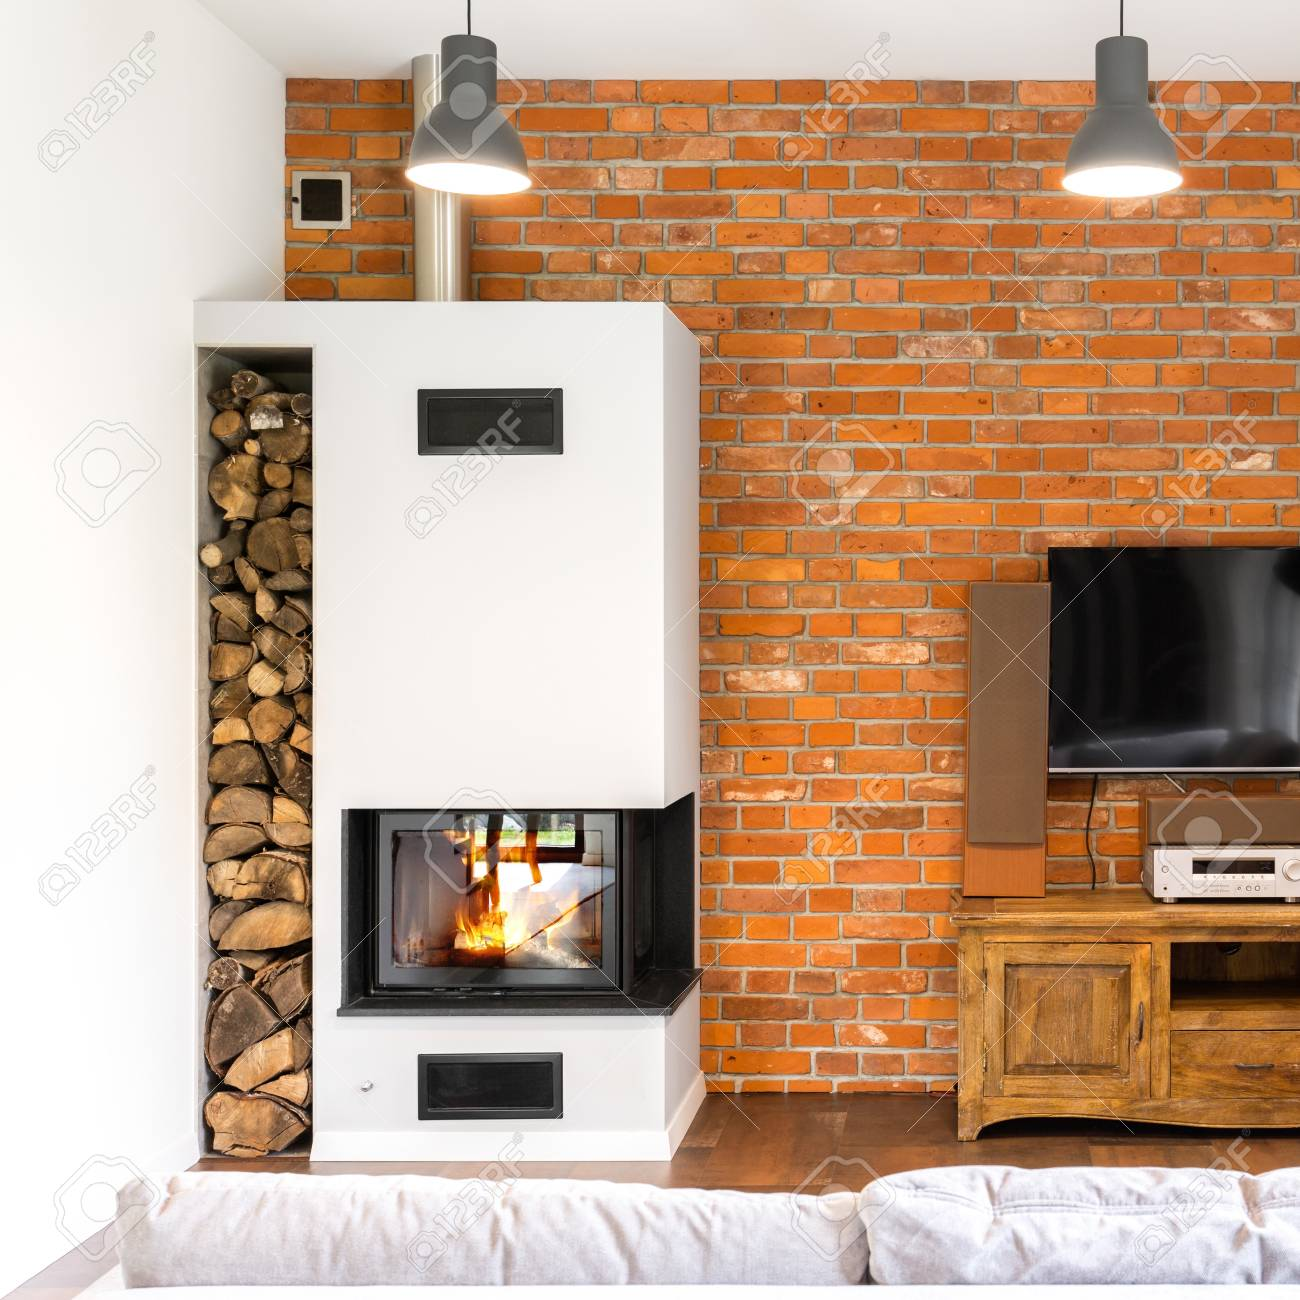 Modern Fireplace Images Brick Wall Living Room With Modern Fireplace Vintage Wooden